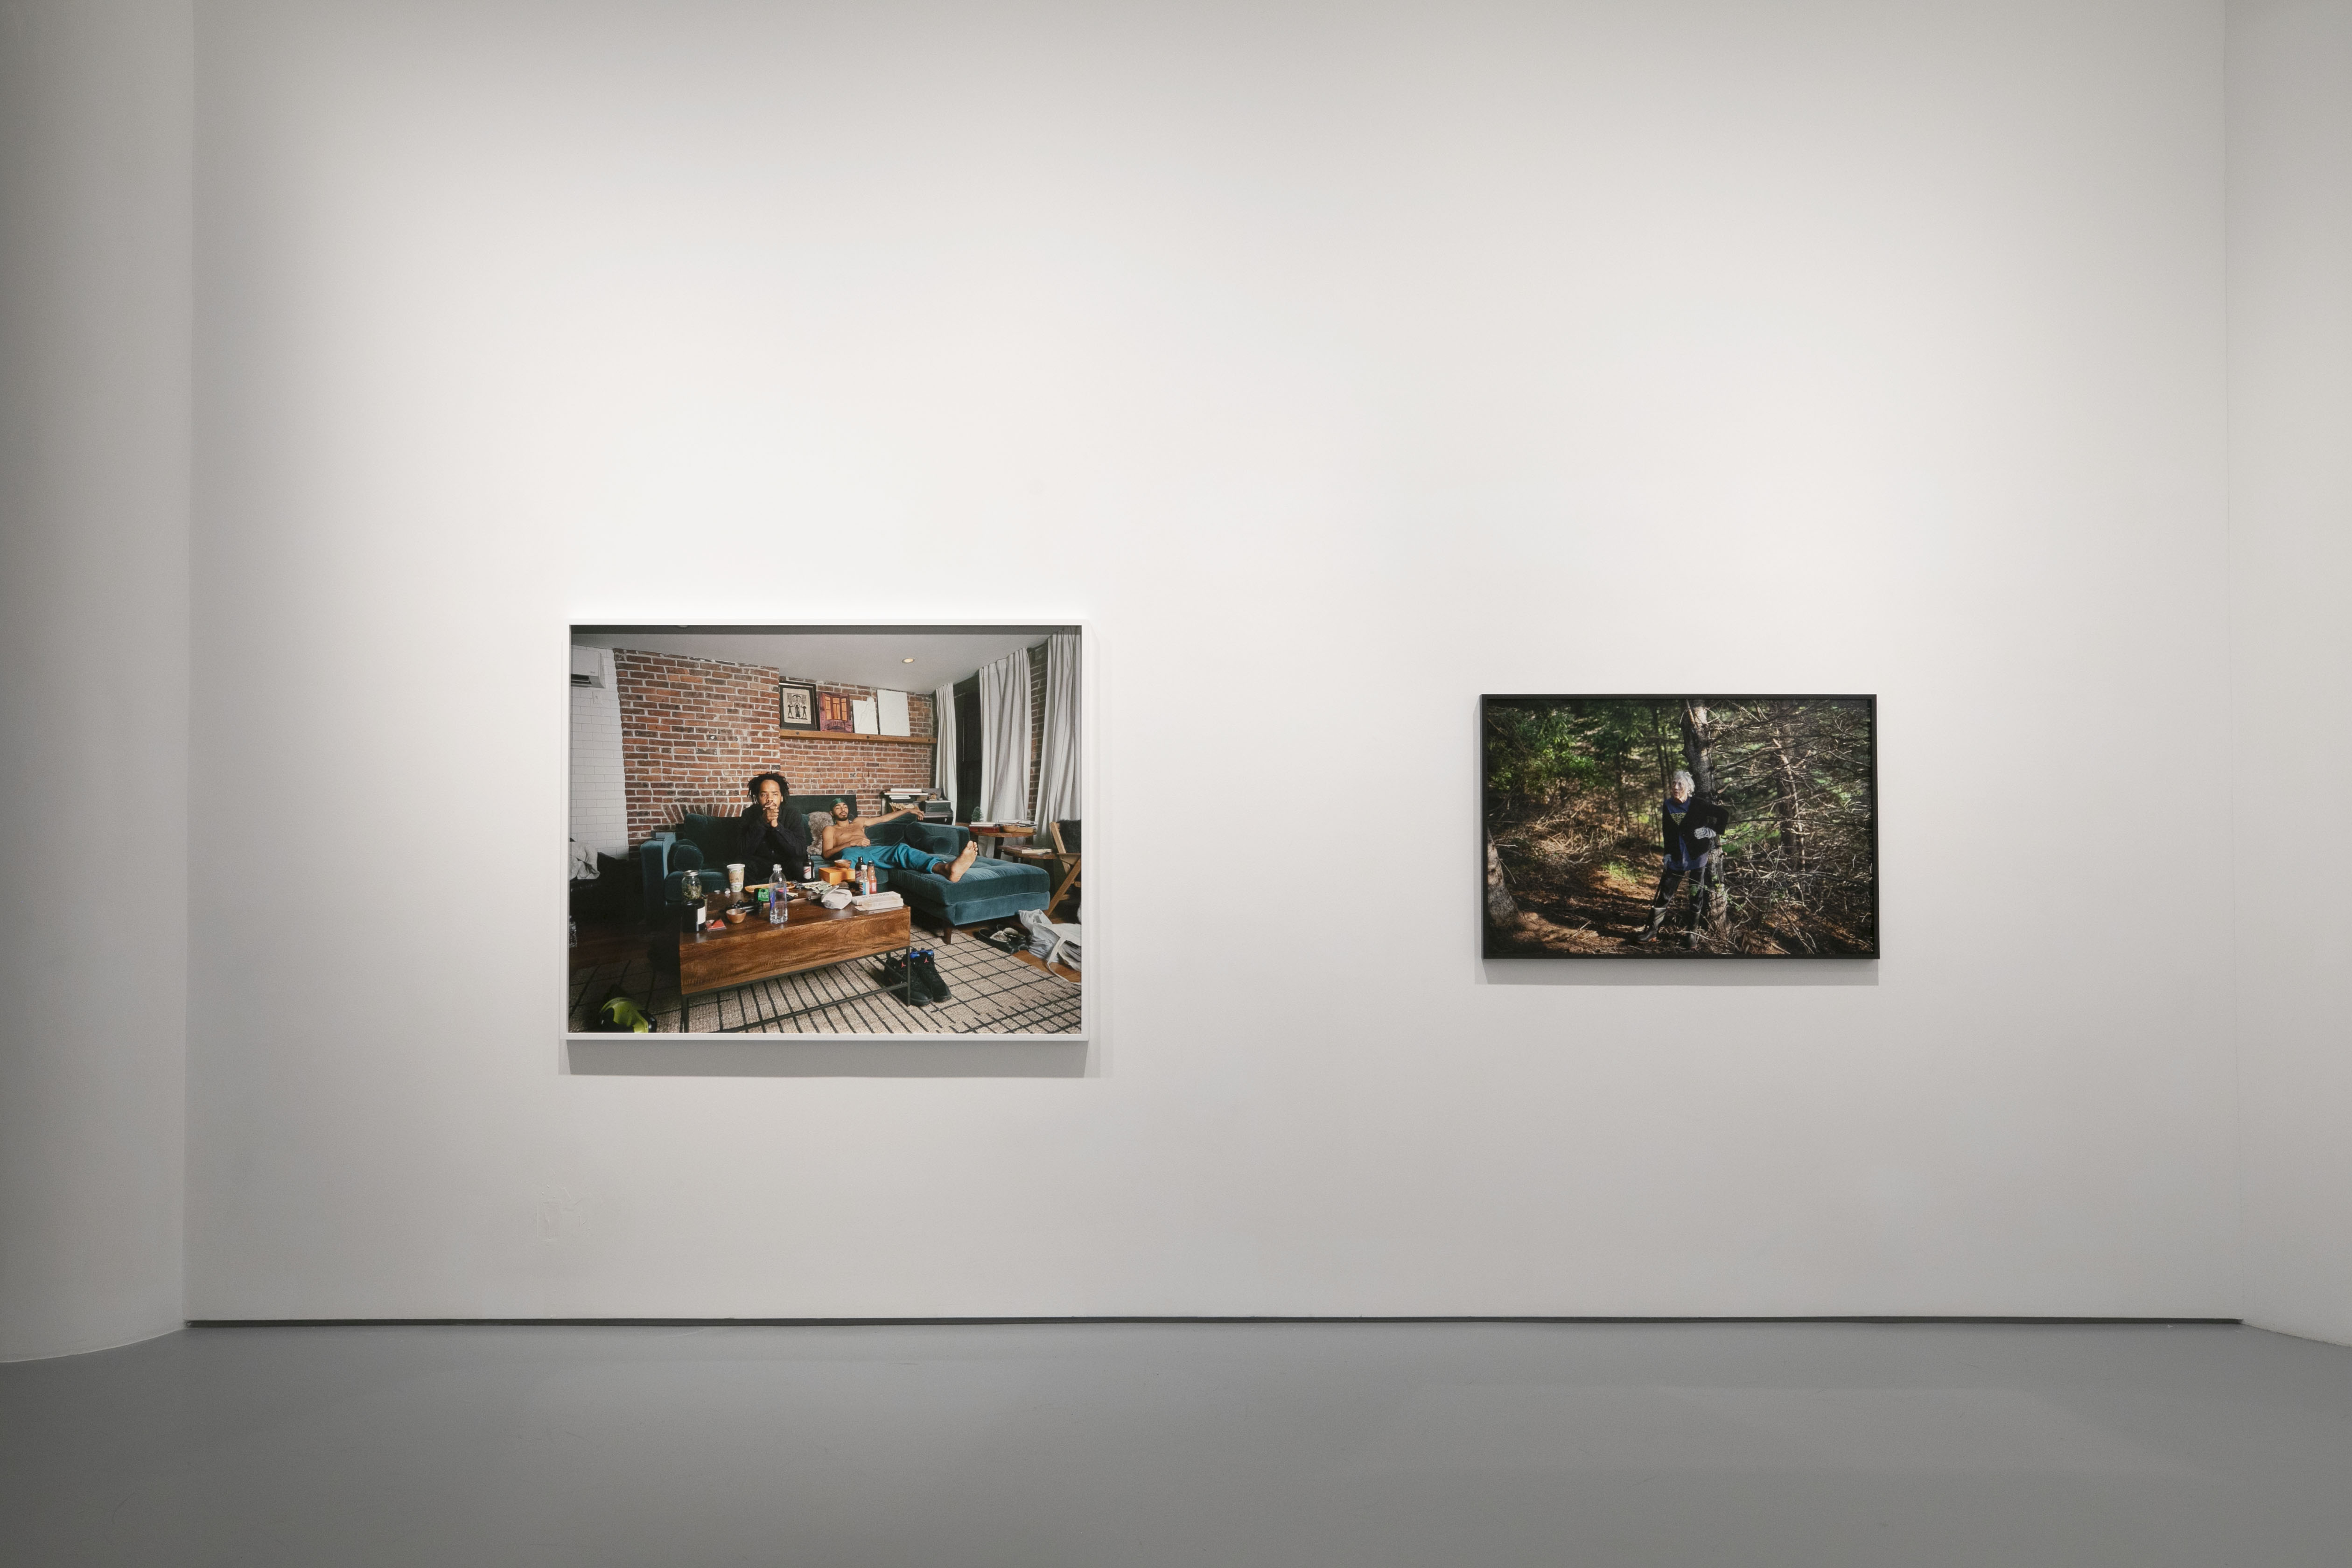 Photograph 5 from Ari Marcopoulos. Films. Photographs.  exhibition.